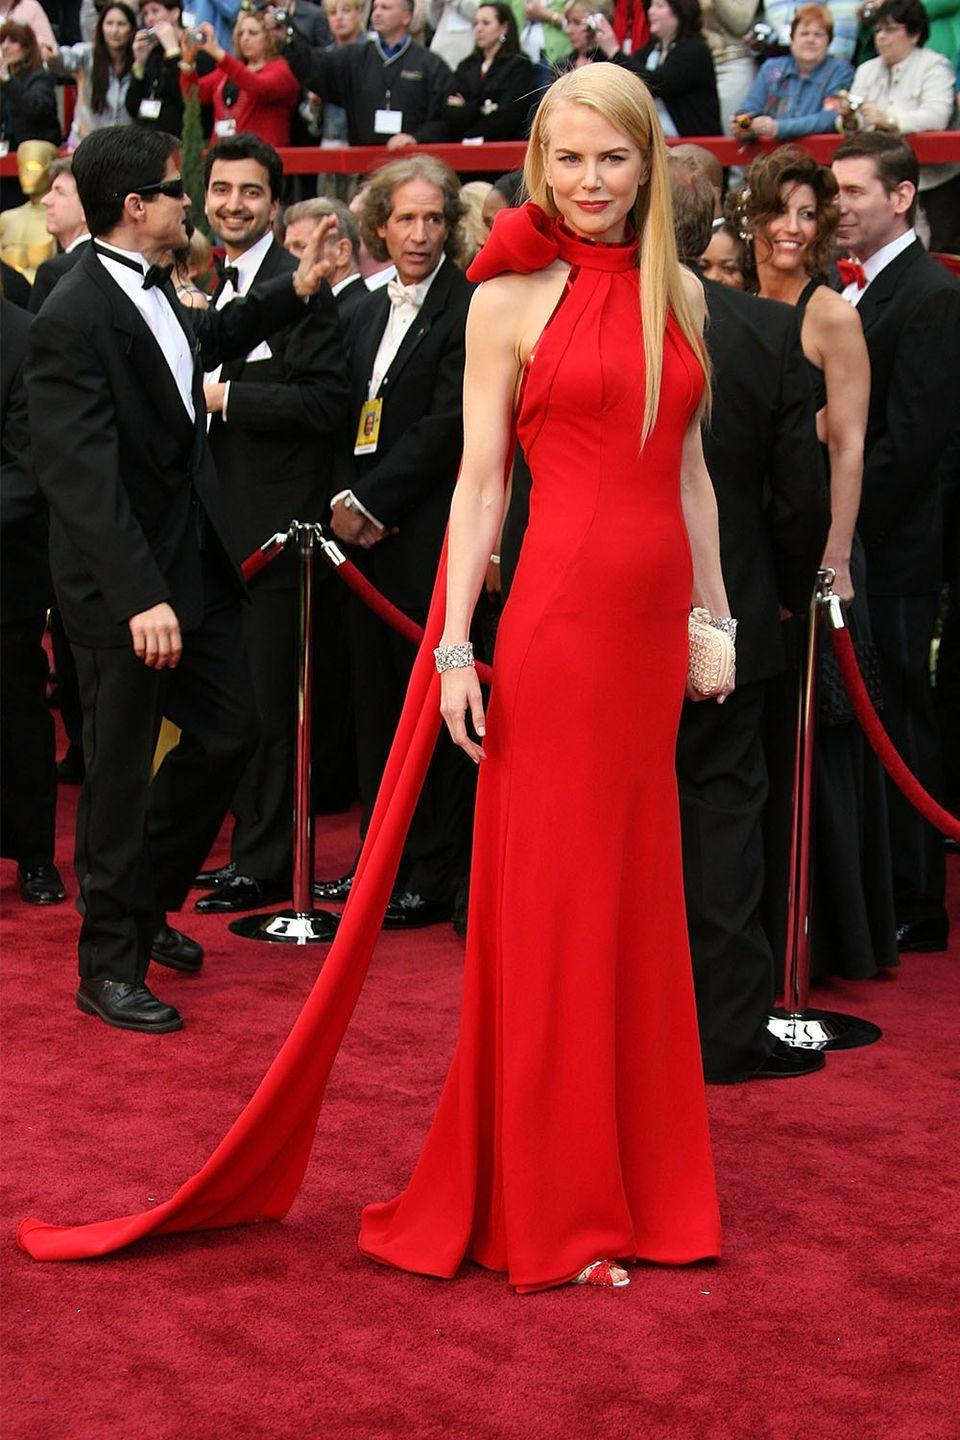 """<p>Nicole Kidman's Balenciaga gown was the style equivalent to """"business in the front, party in the back"""" with the exquisite bow draping from her neck into a train behind her. </p>"""